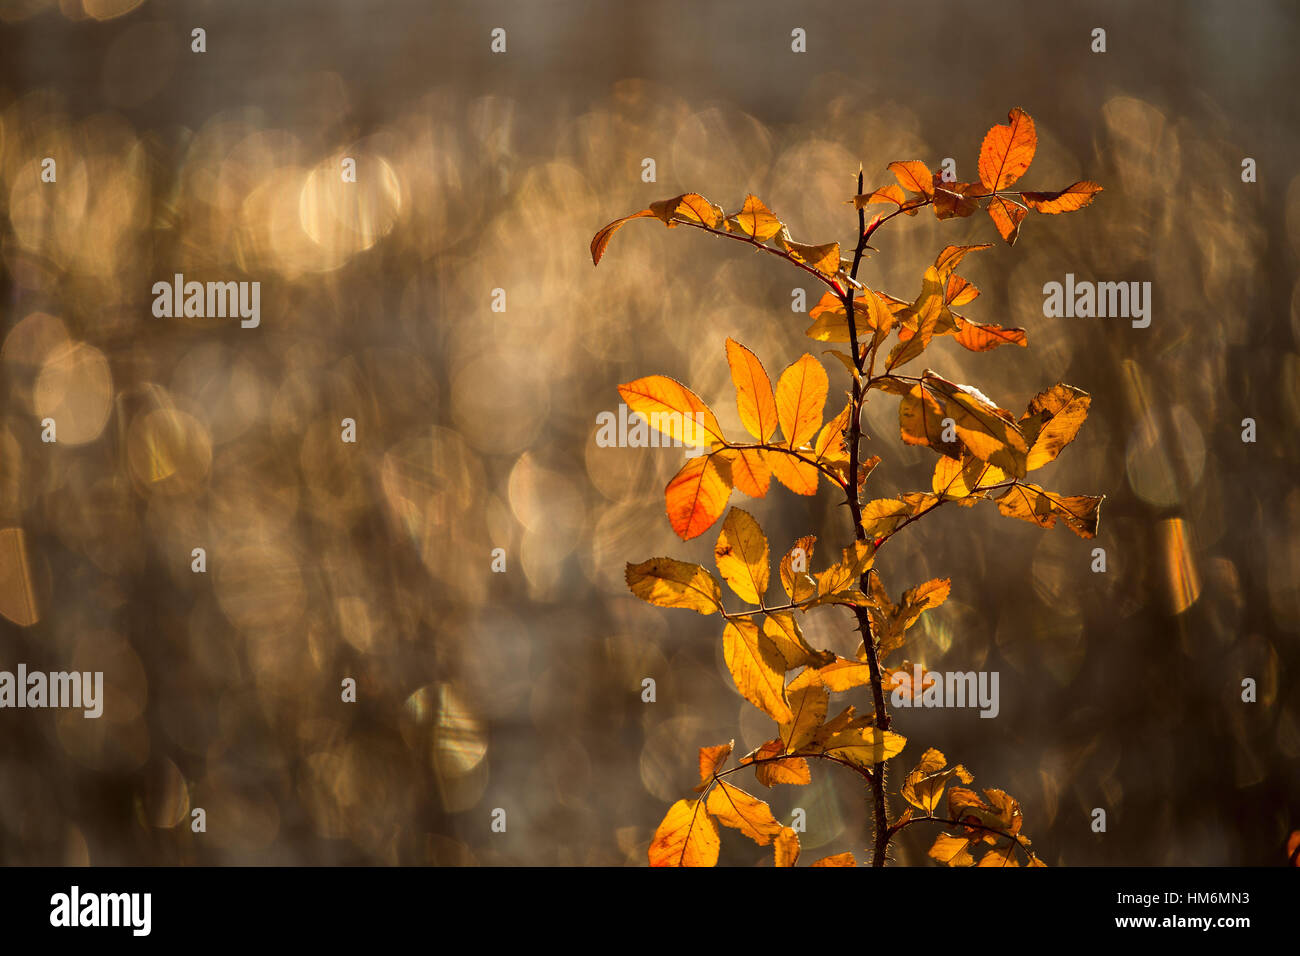 4 Season winter,beautiful,blurred,bokeh,breeze,closeup,cold,colorful,cool,crystal,december,dry,evening,Finland,flower,freeze,frost,frosty,hay,herbal,ice,icy,light,macro,Melancholie,melancholy,natural,nature,nobody,orange,plant,Romance,Romantik,rose Stockbild